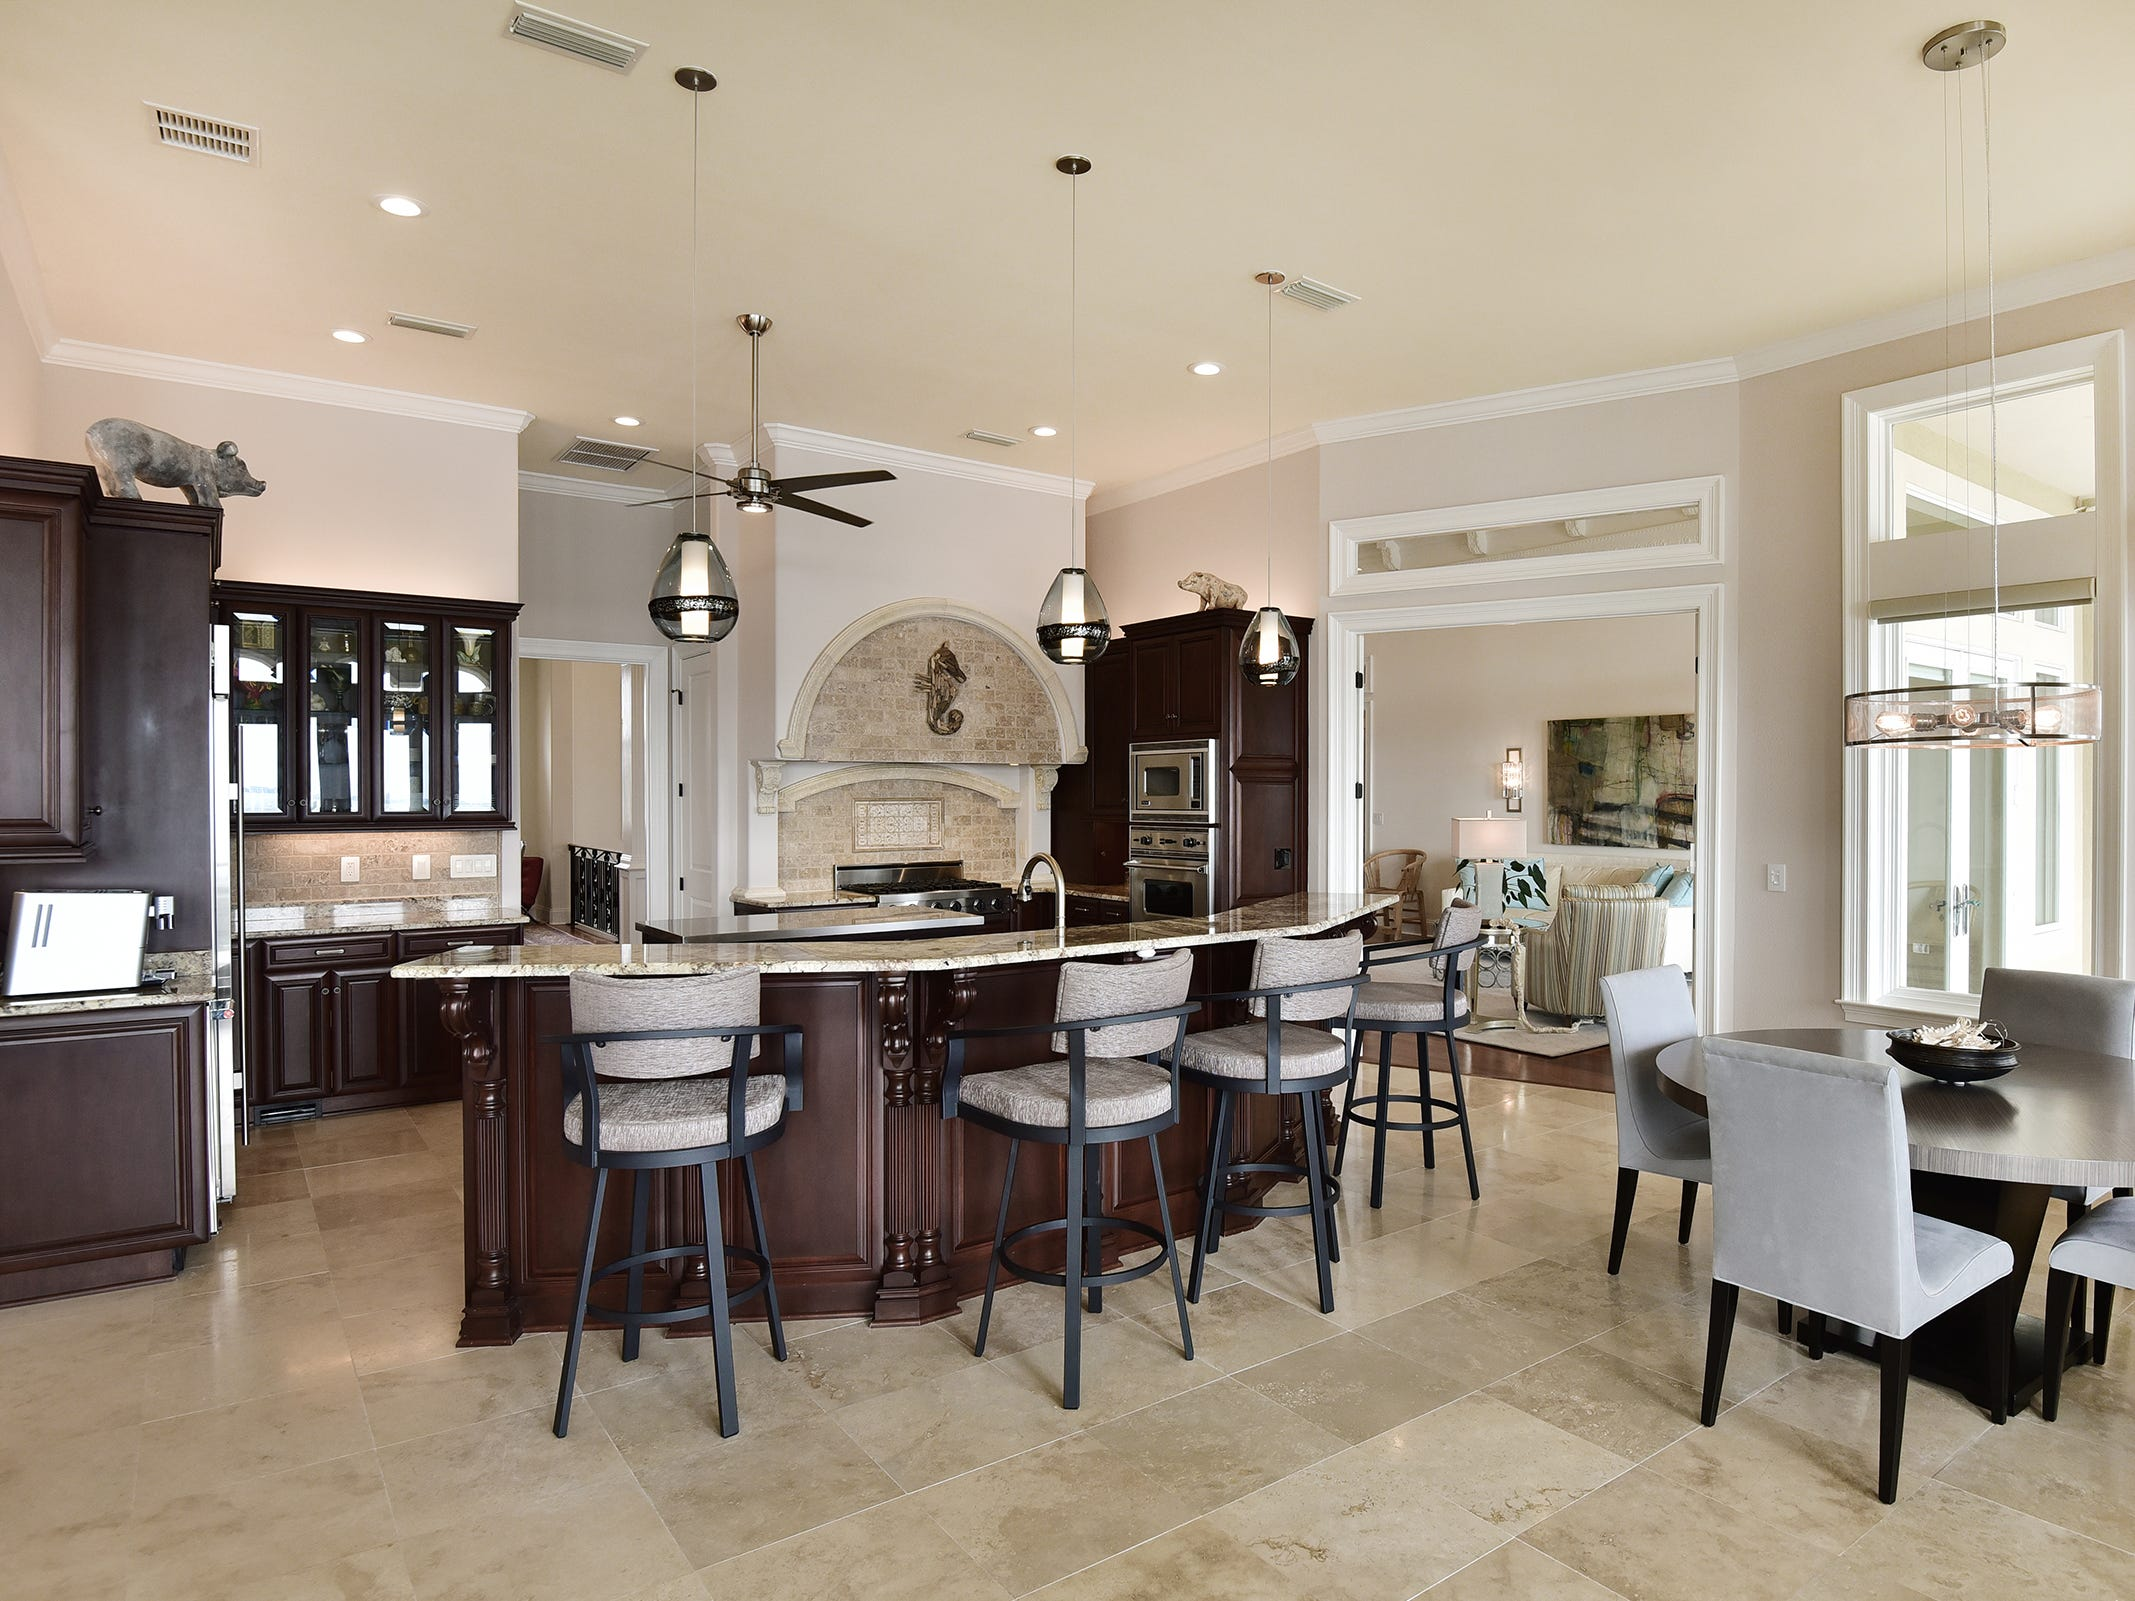 5 Colley CoveThe open, gourmet kitchen and casual dining space.